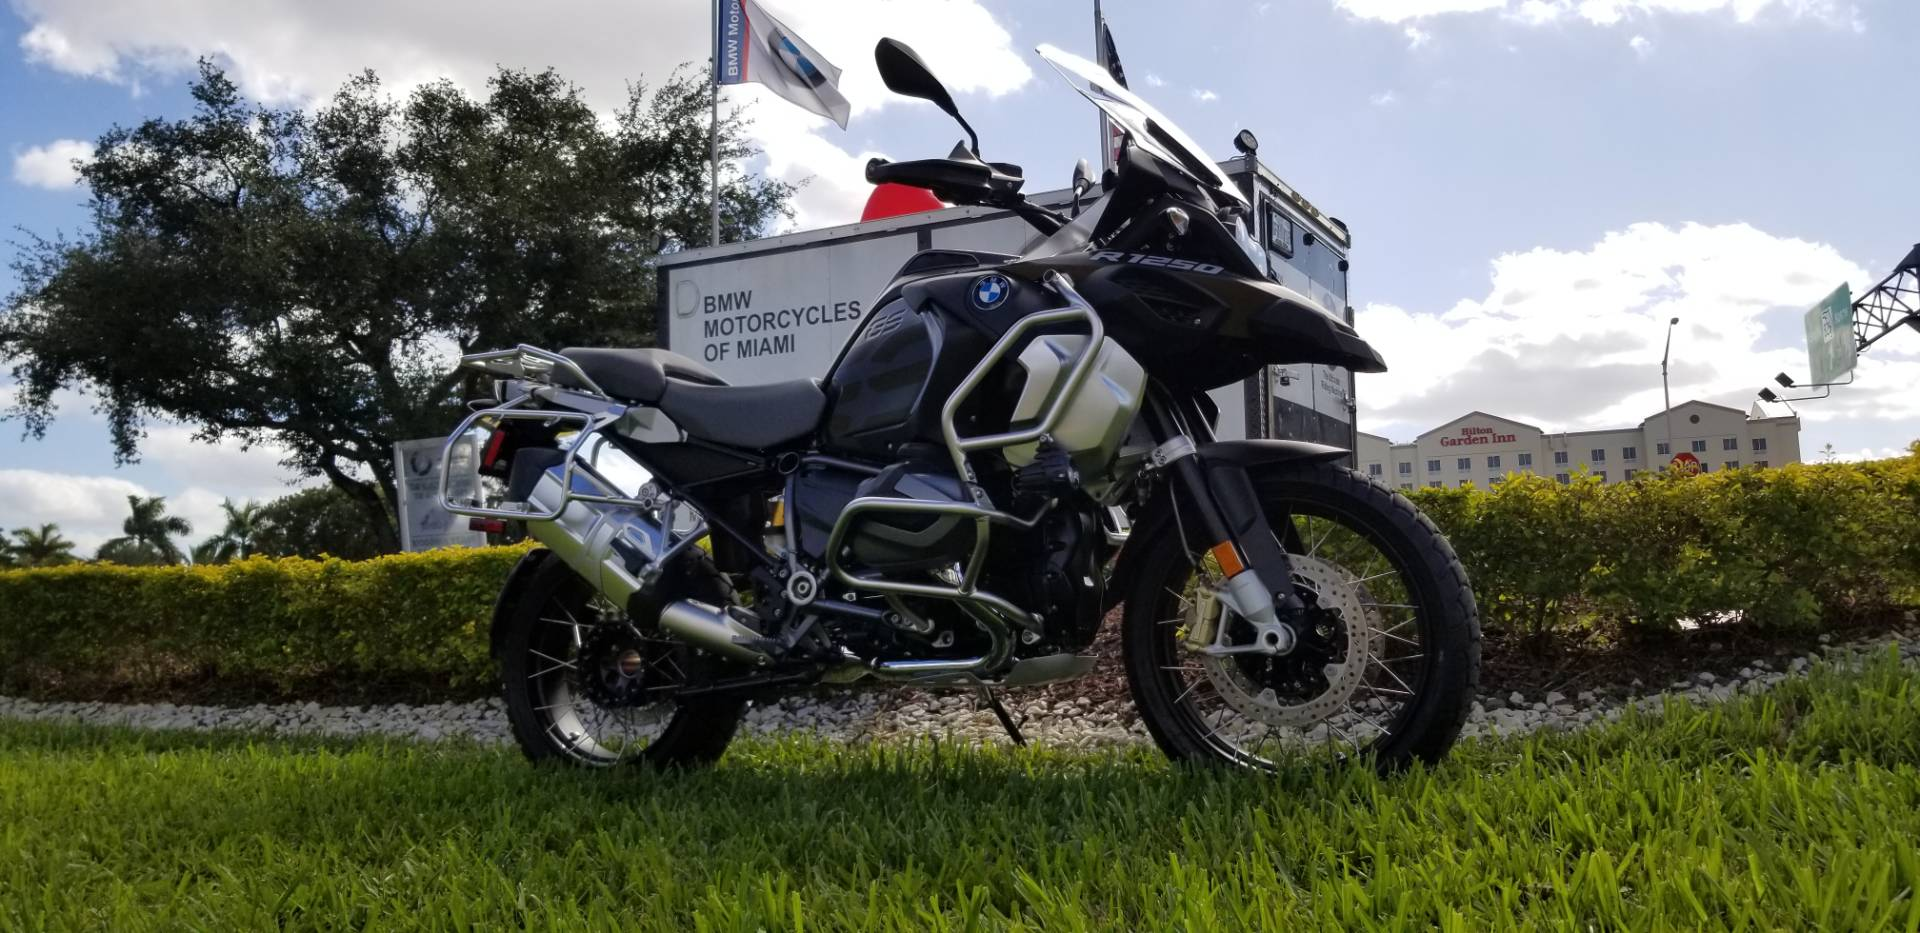 New 2019 BMW R 1250 GSA for sale, BMW for sale R 1250GSA, BMW Motorcycle R1250GSA, new BMW 1250GS Adventure, R1250GSAdventure, BMW Adventure, BMW Motorcycles of Miami, Motorcycles of Miami - Photo 30